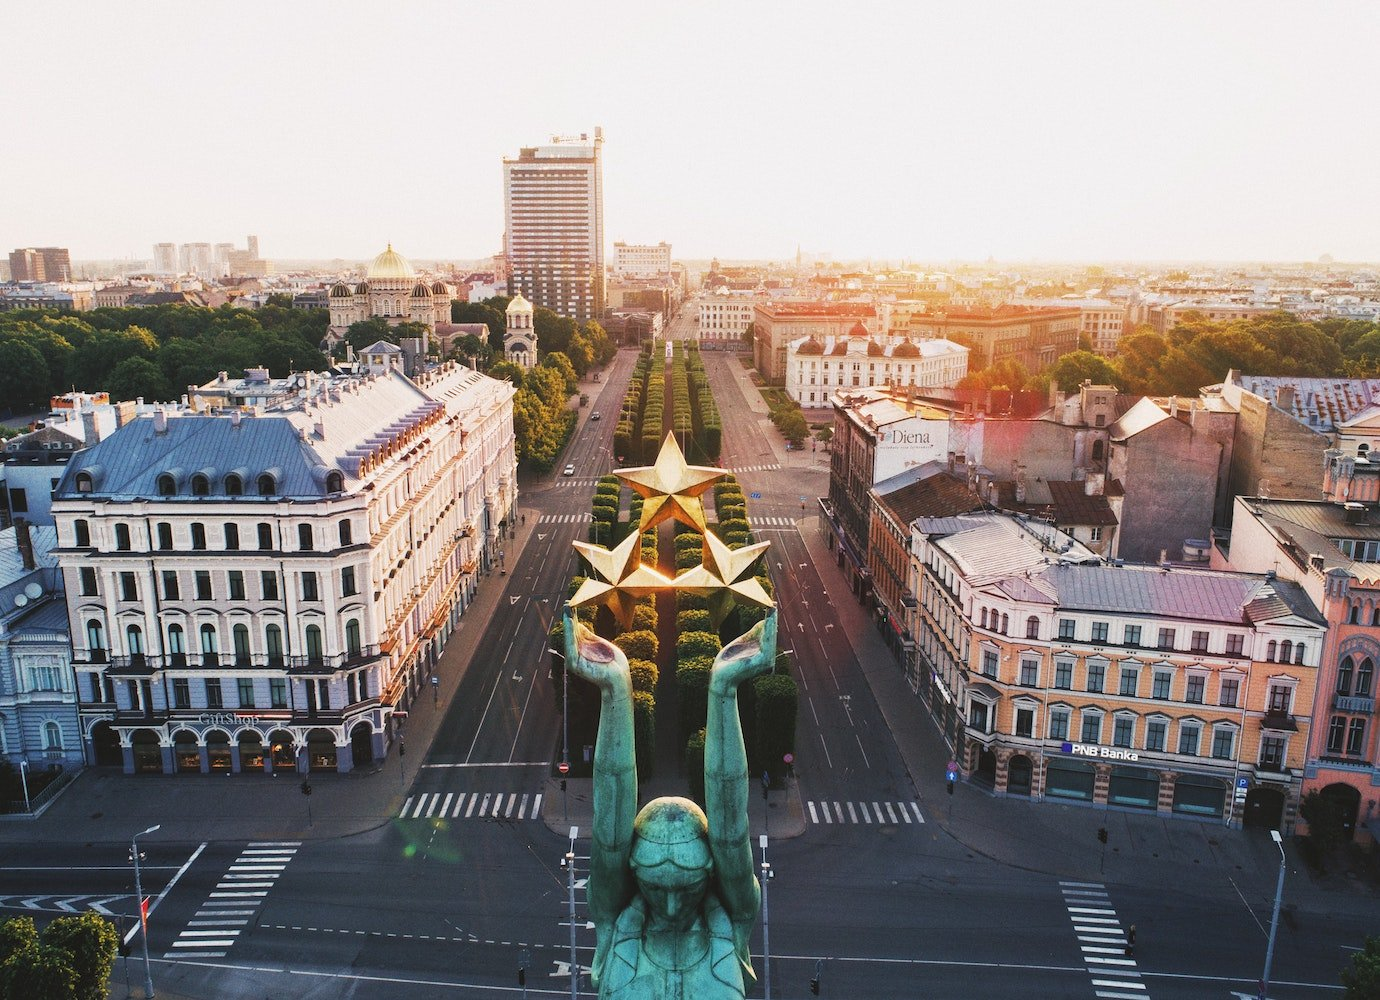 Latvia is Eastern Europe's most 'artistic' country, study finds